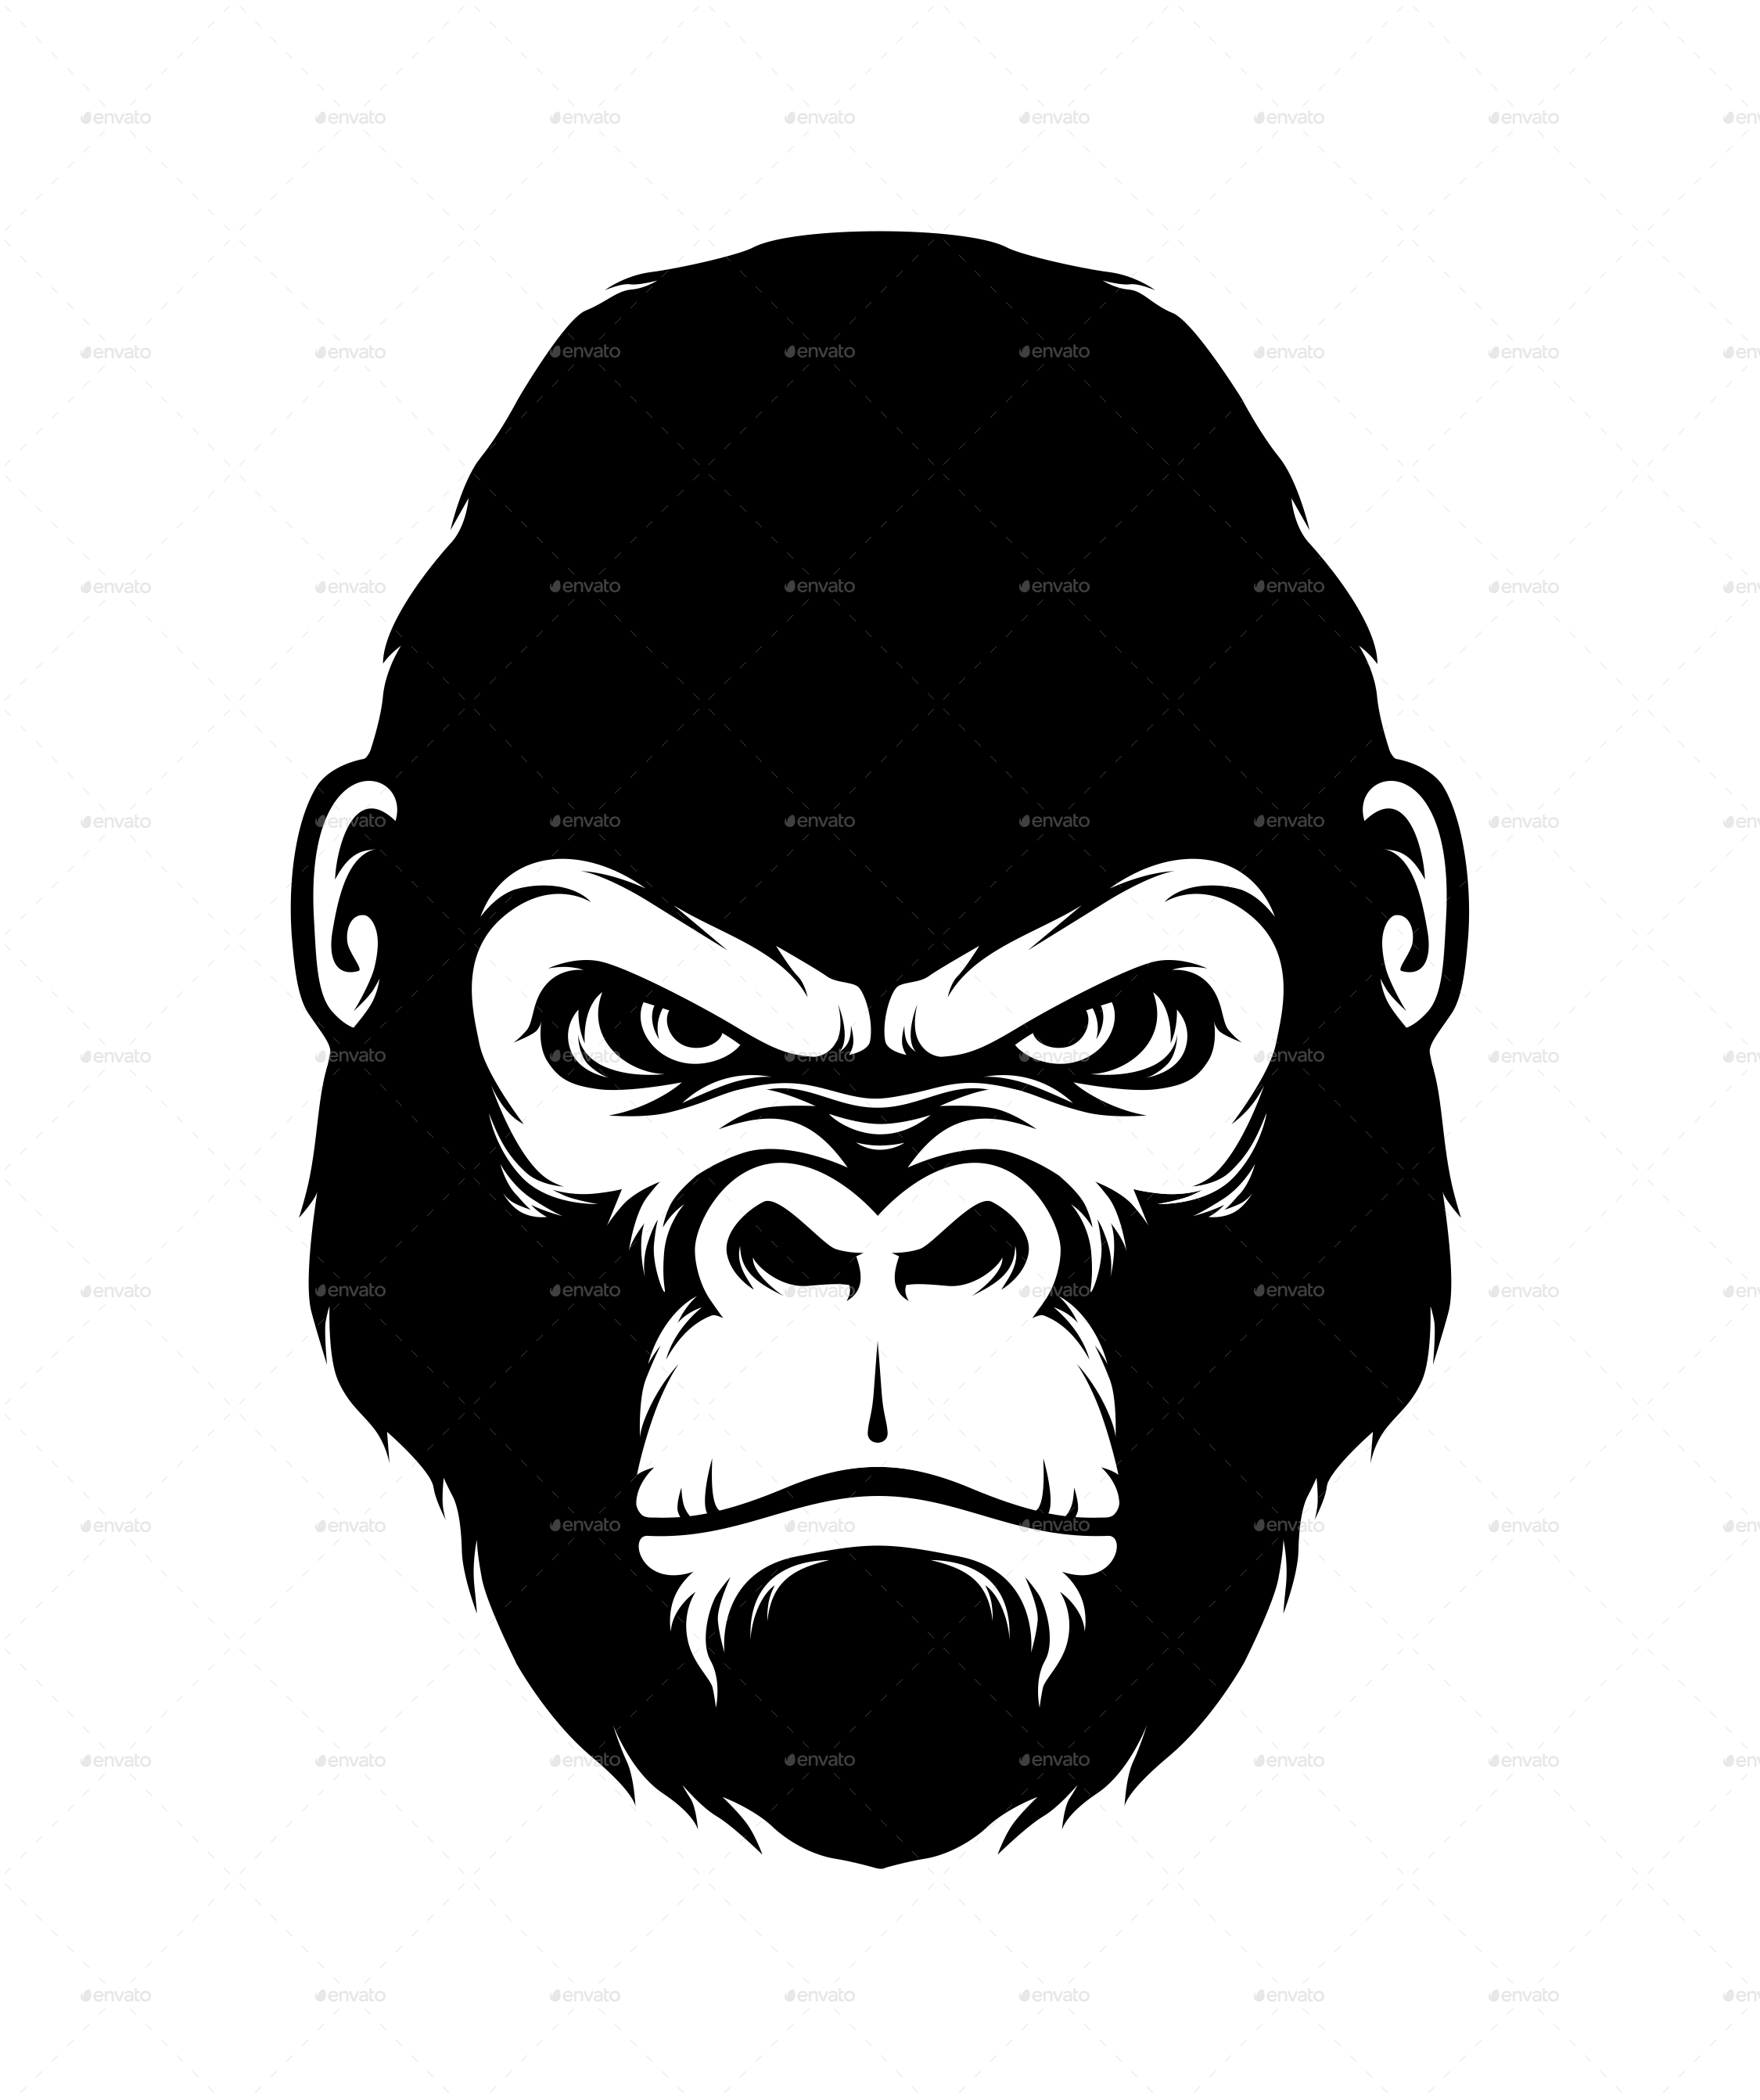 Gorilla face clipart svg download Gorilla head clipart images gallery for free download | MyReal clip ... svg download